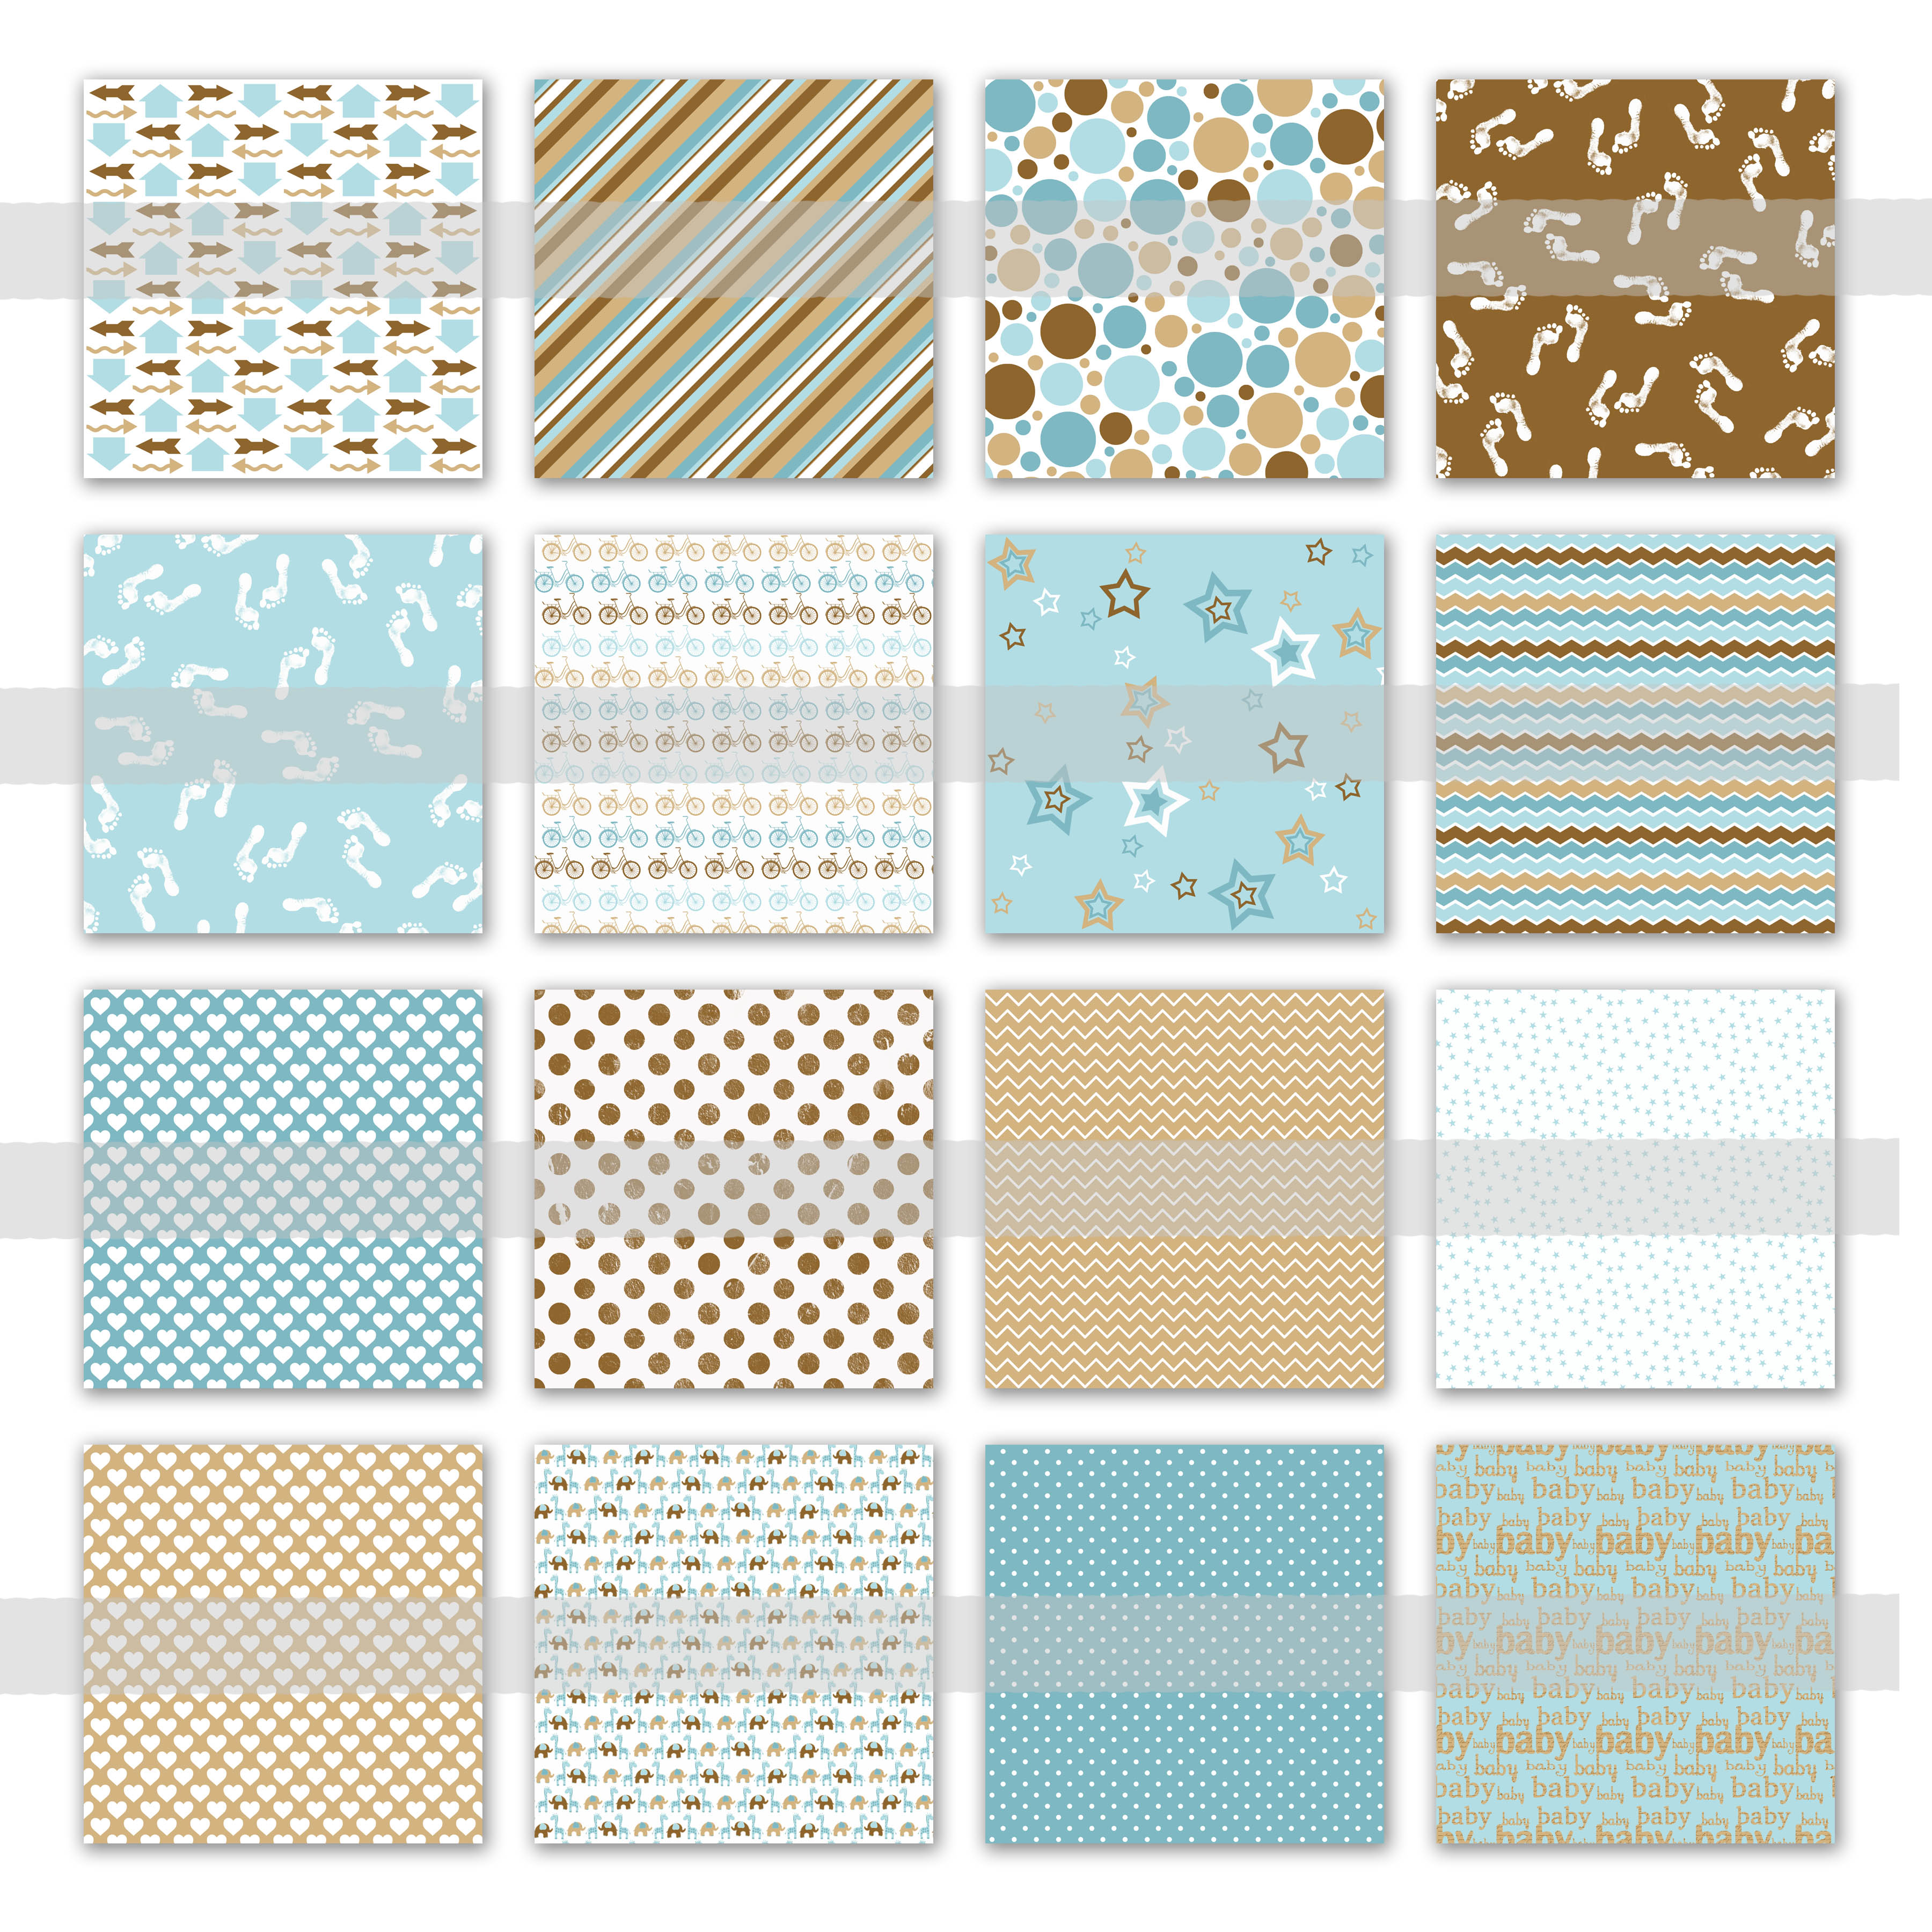 Baby Boy Digital Paper in Blues and Browns Graphic Backgrounds By oldmarketdesigns - Image 2